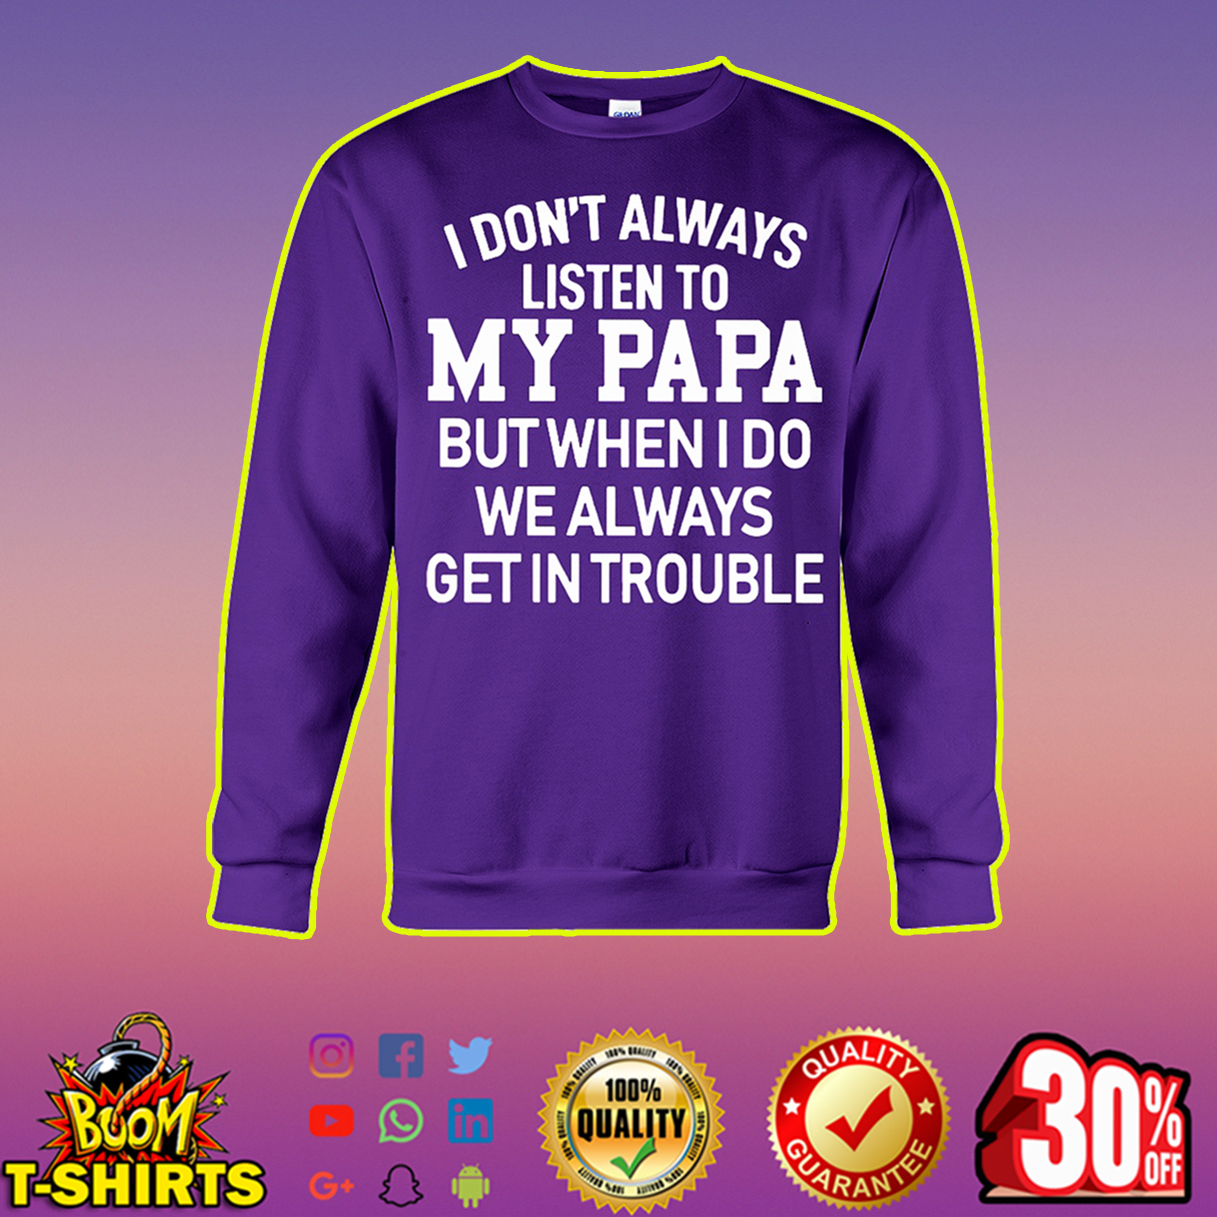 I don't always listen to my papa but when I do we always get in trouble sweatshirt